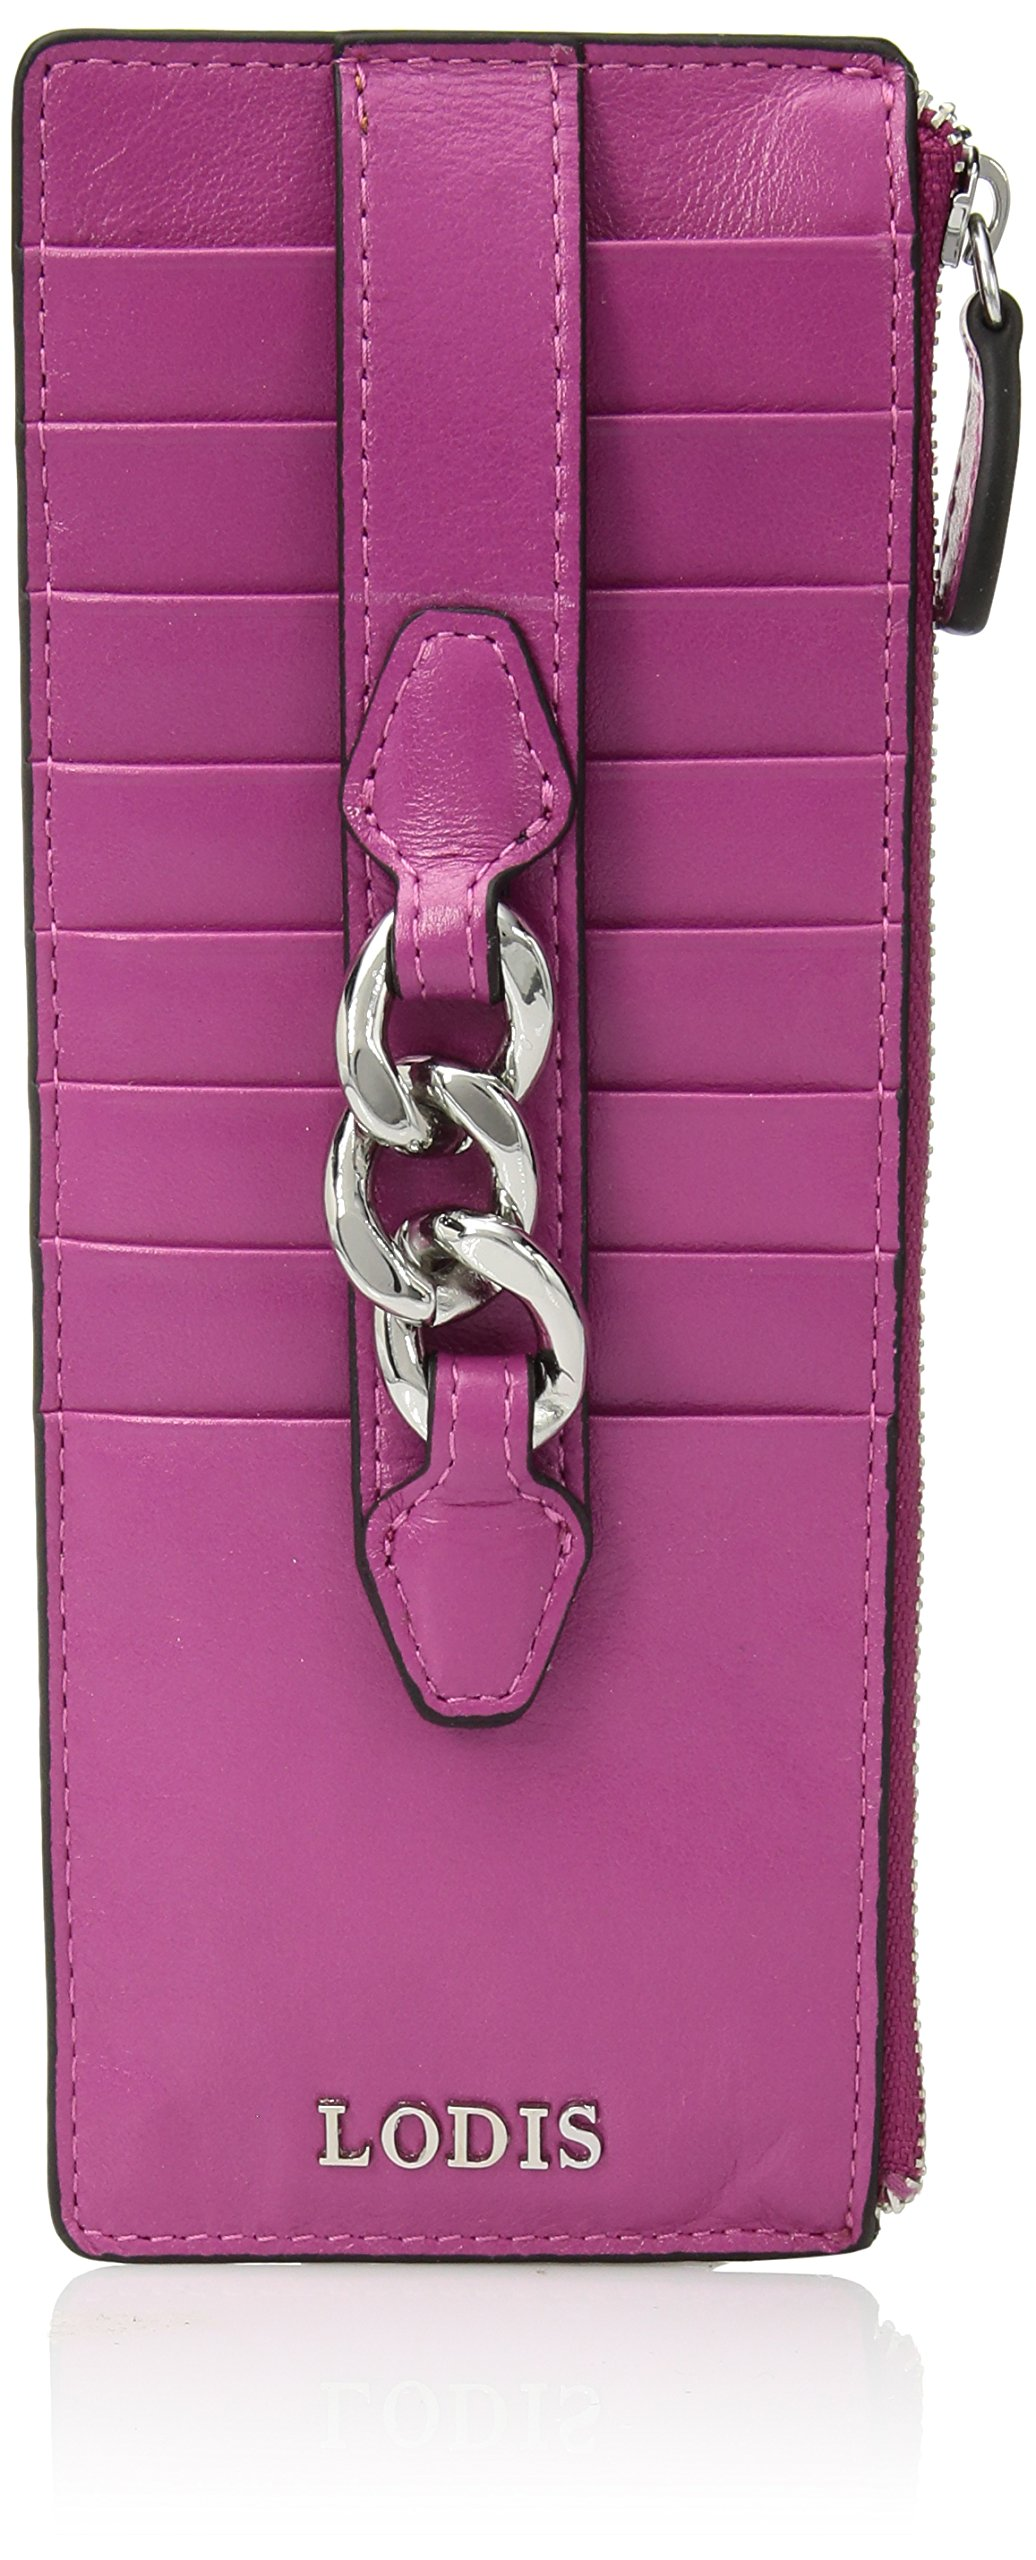 Lodis Rodeo Chain Credit Card Case with Zipper Pocket, fuchsia